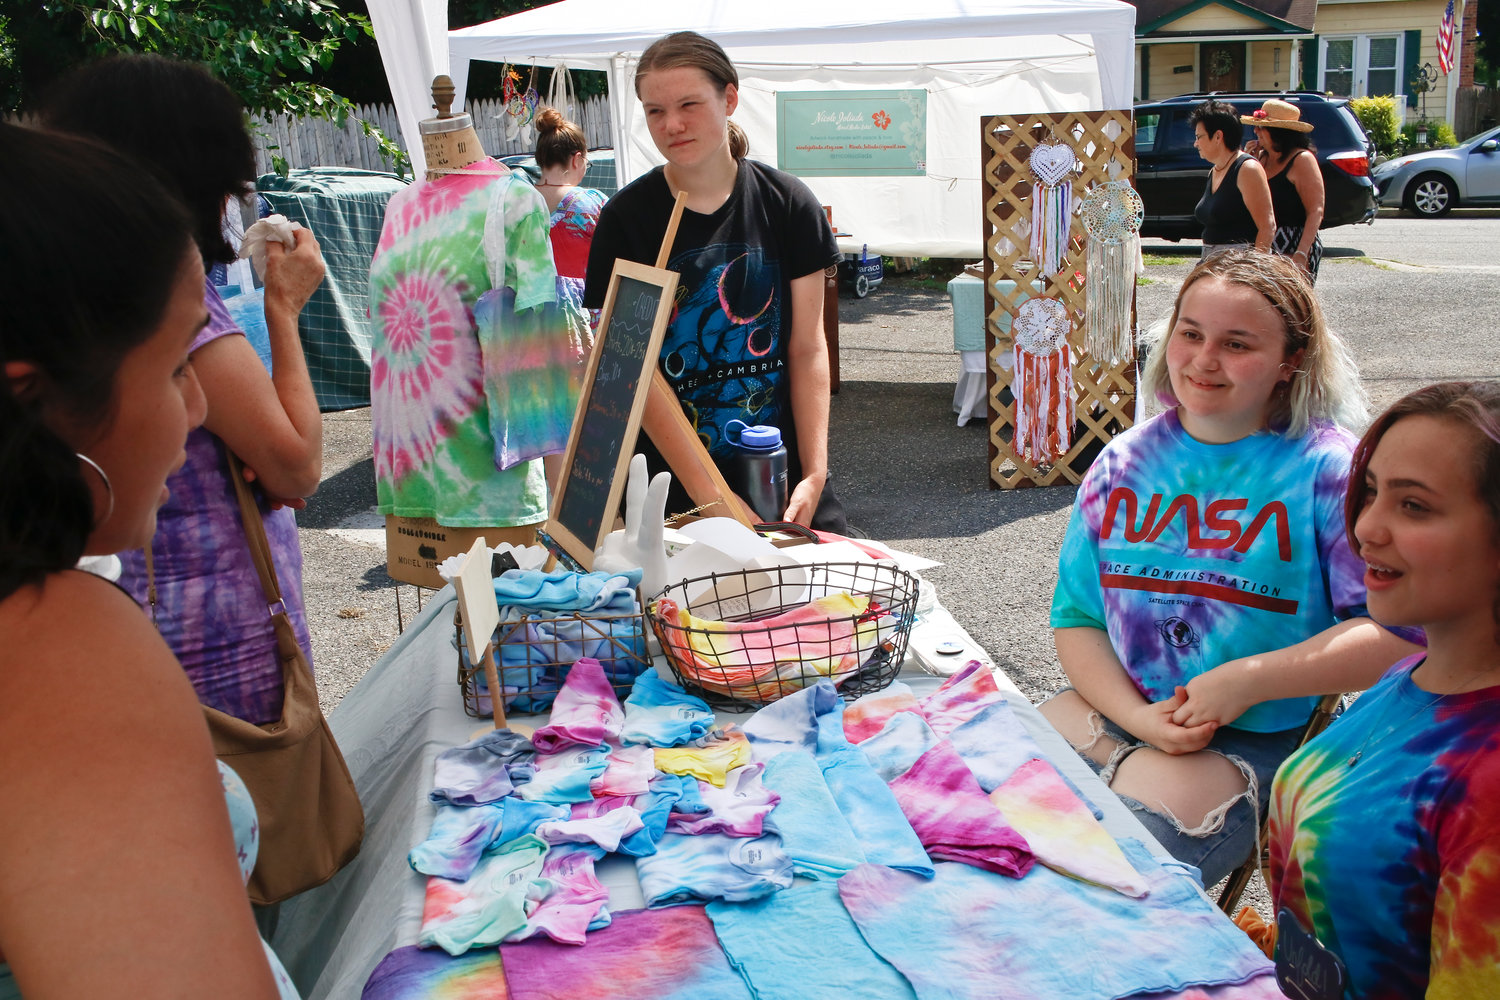 Handmade tie-dye clothing was sold by Allie Merle, Elizabeth Baldino and Amy Sofikitis.